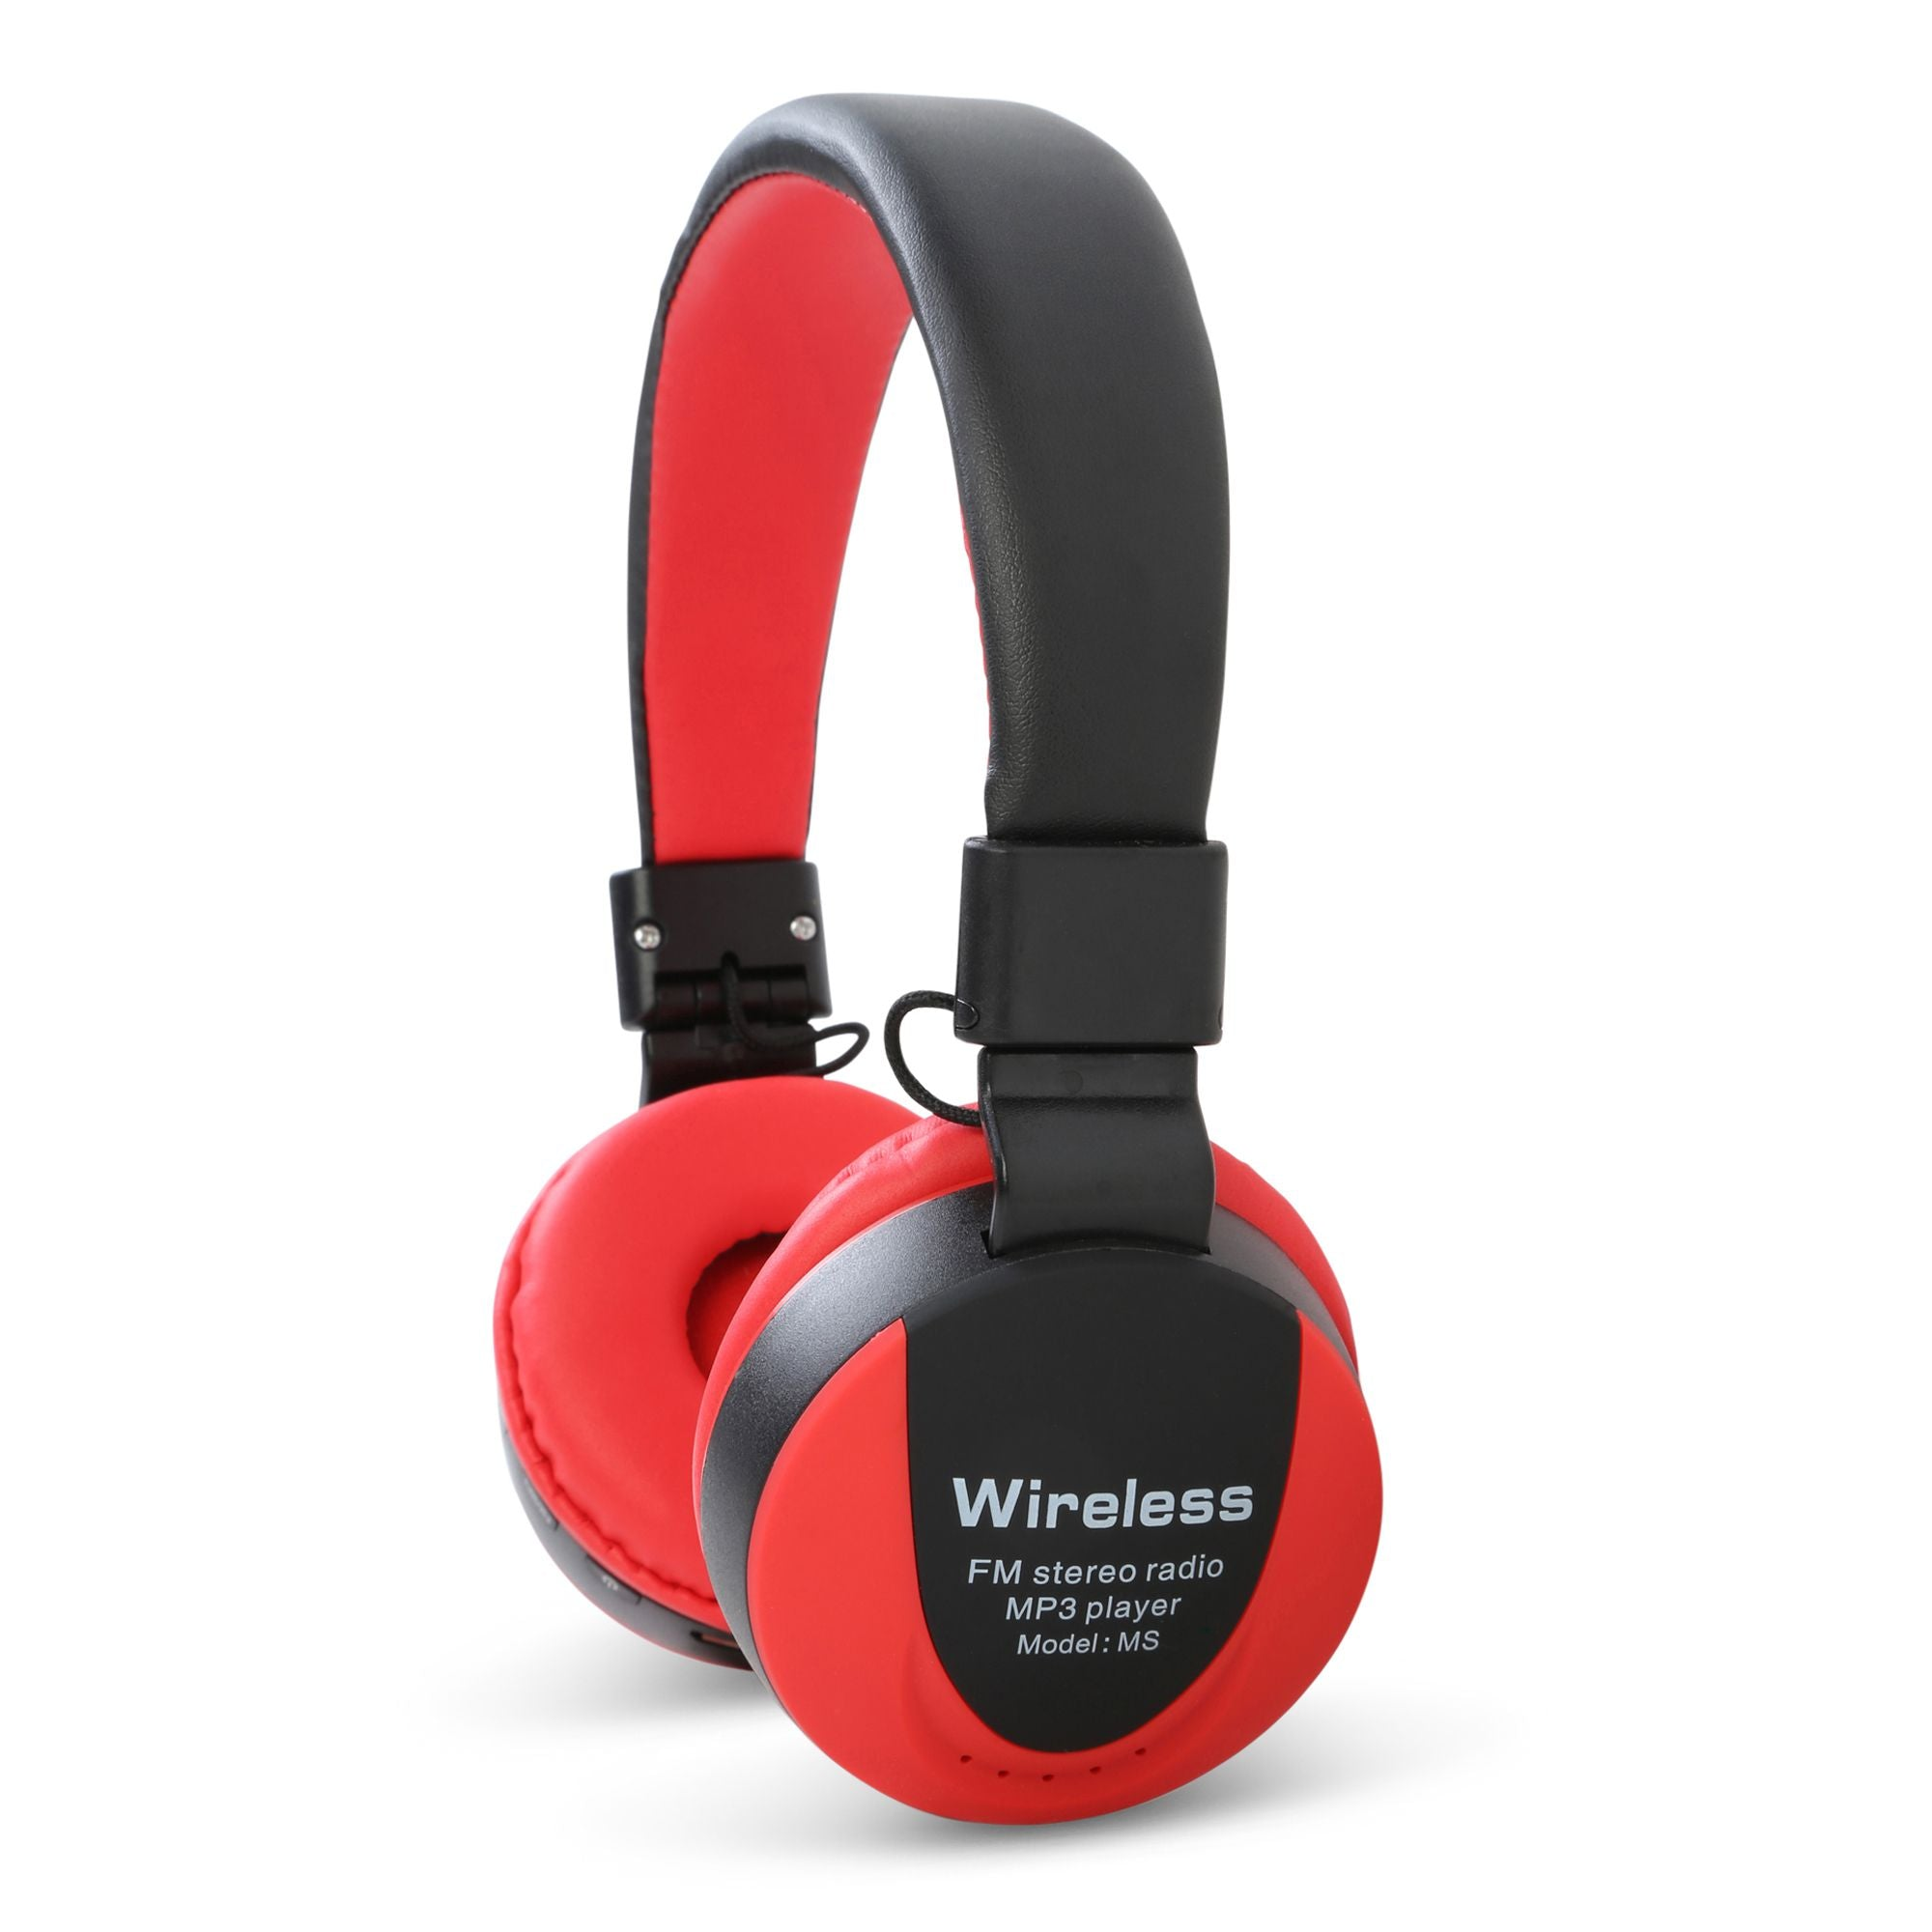 Generic Bluetooth Wireless HD Bass Dolby Headphones For PC And All Smartphones, MS -771A - Red,Black